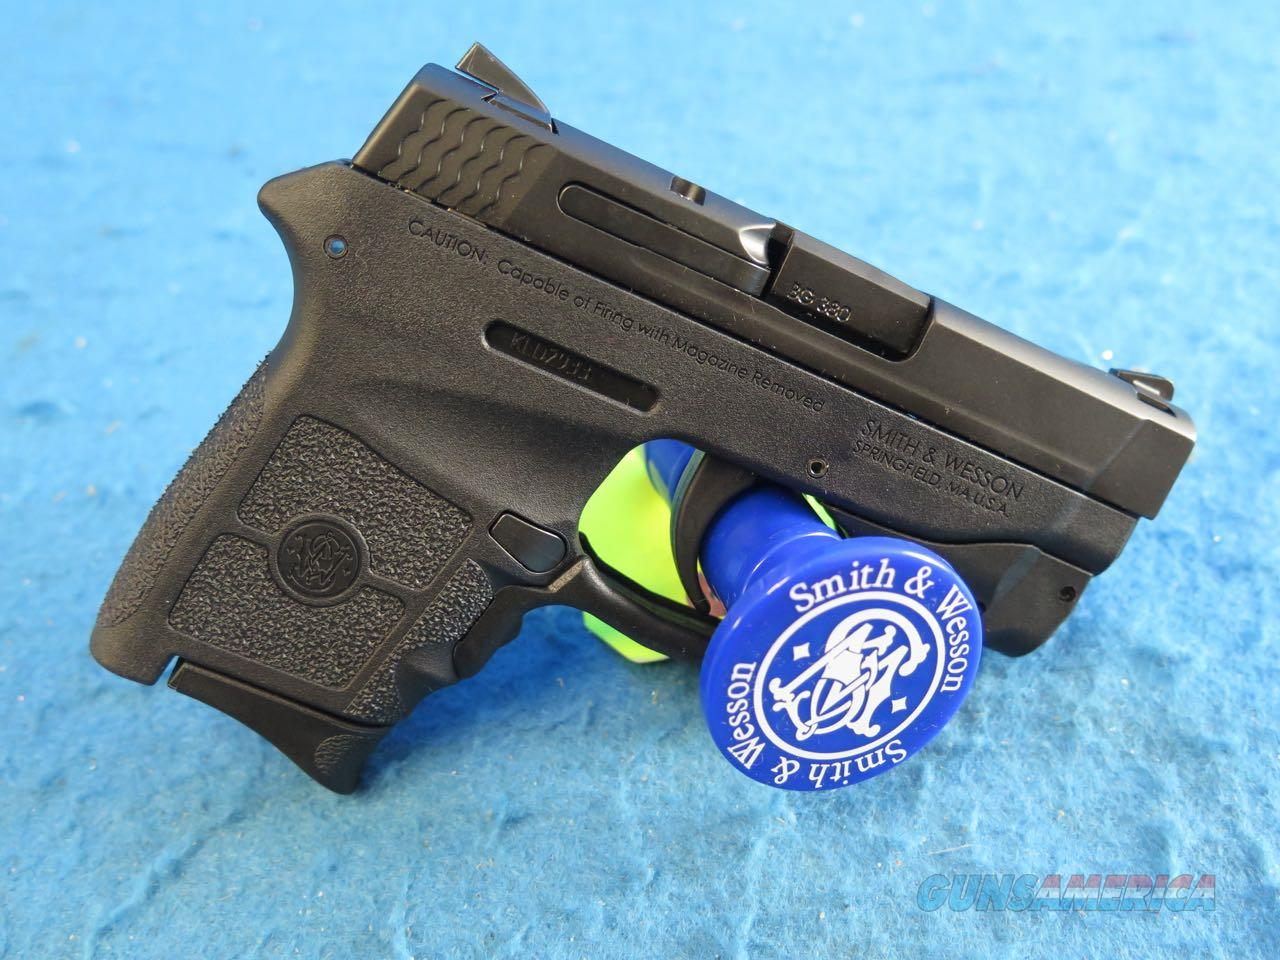 Smith & Wesson M&P Bodyguard Crimson Trace Green Laserguard .380 ACP Pistol SKU 10178 **New**  Guns > Pistols > Smith & Wesson Pistols - Autos > Polymer Frame